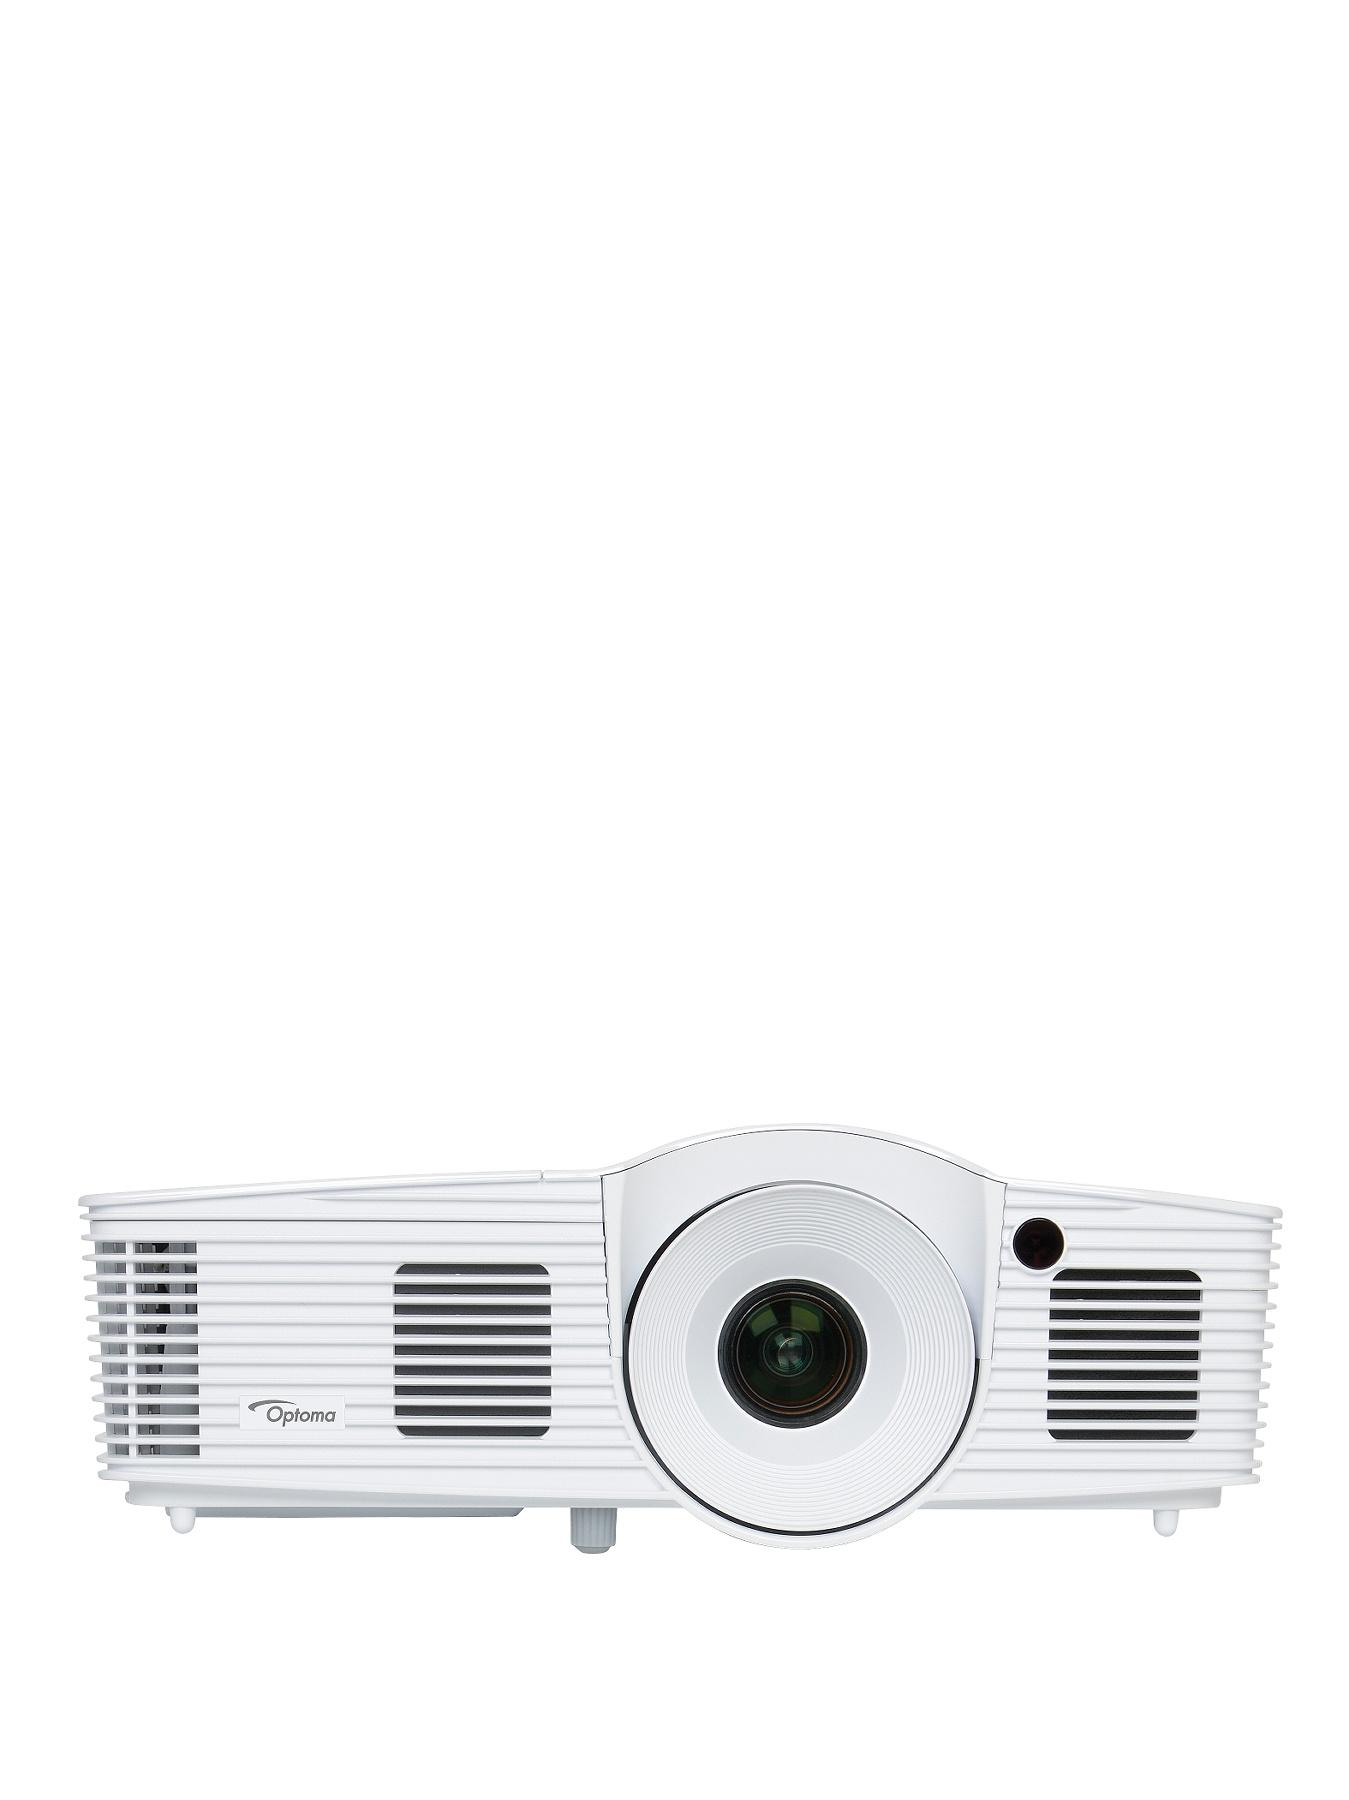 Optoma Optoma HD26 Full HD 1080p DLP Home Cinema Projector with integrated speaker with gaming mode